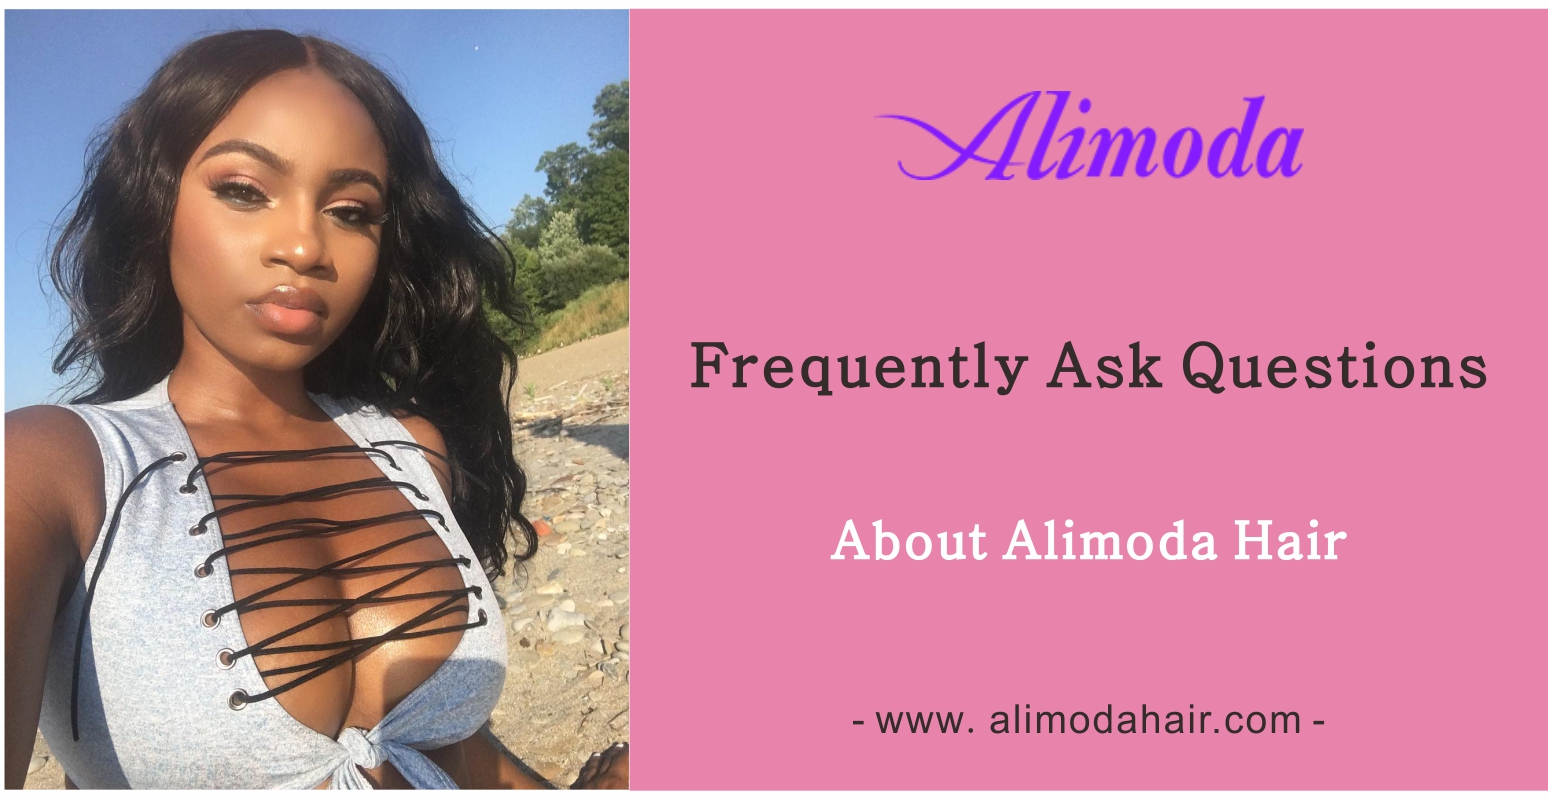 Frequently ask questions about Alimoda Hair